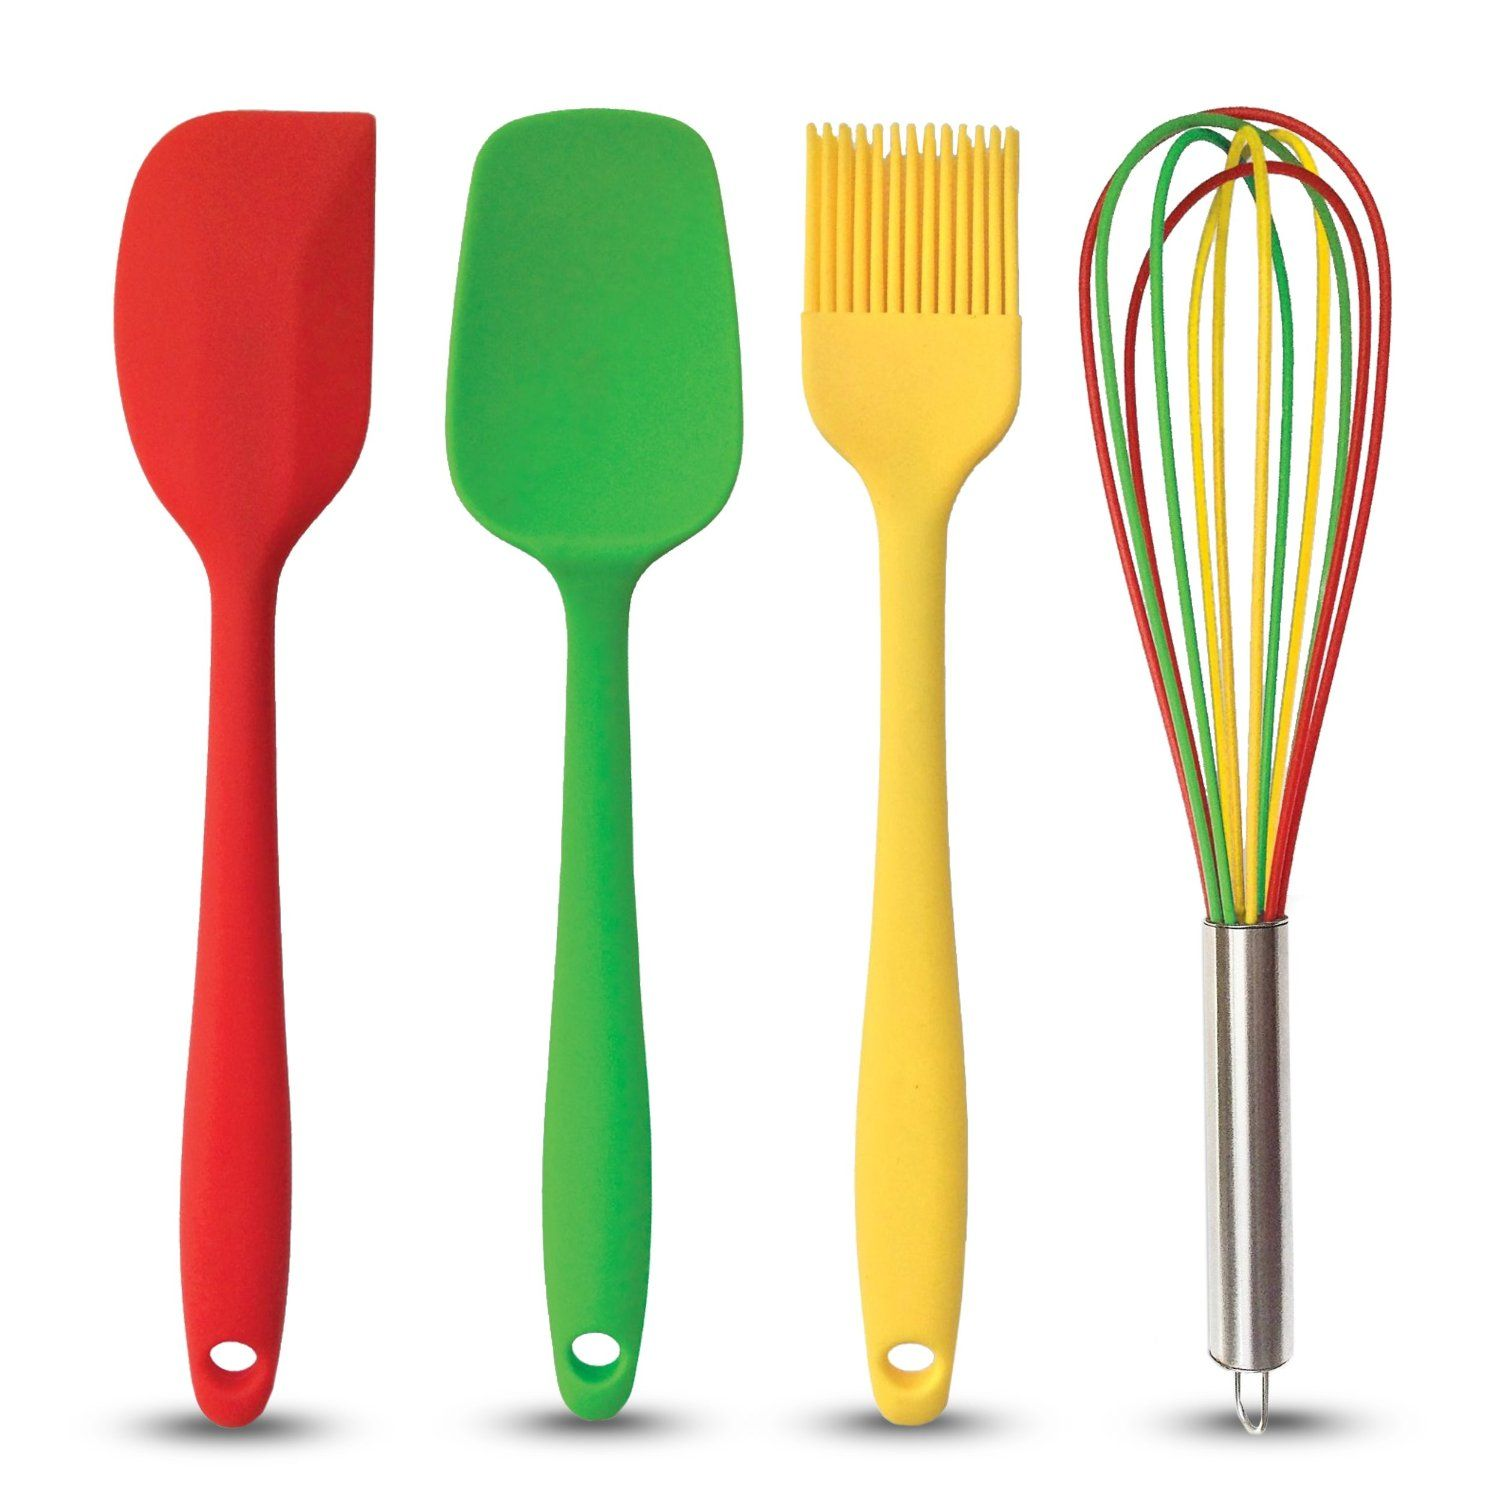 Cute Kitchen Cooking Utensils Set Made Of Fba Roved Silicone Includes Red Spatula Green Spoon